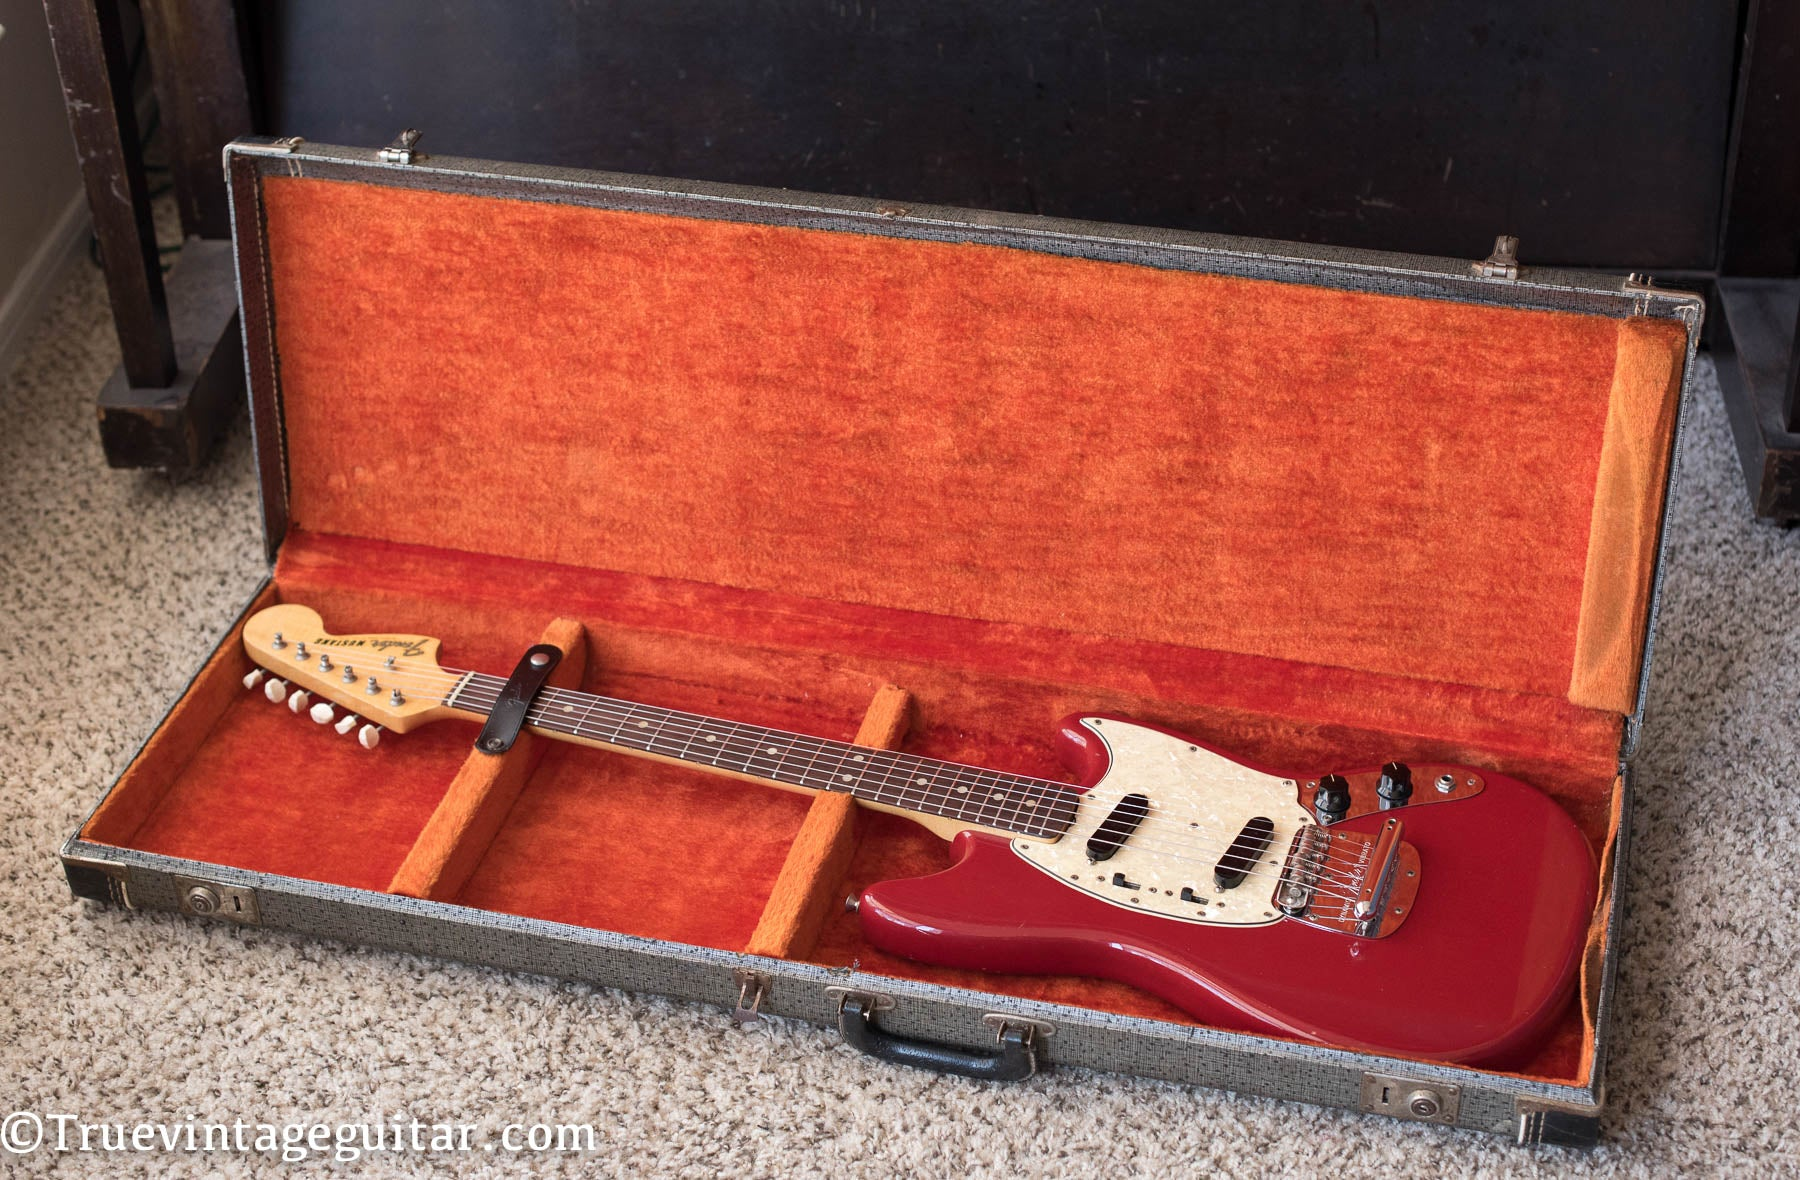 Vintage 1960s Fender Mustang guitar Red